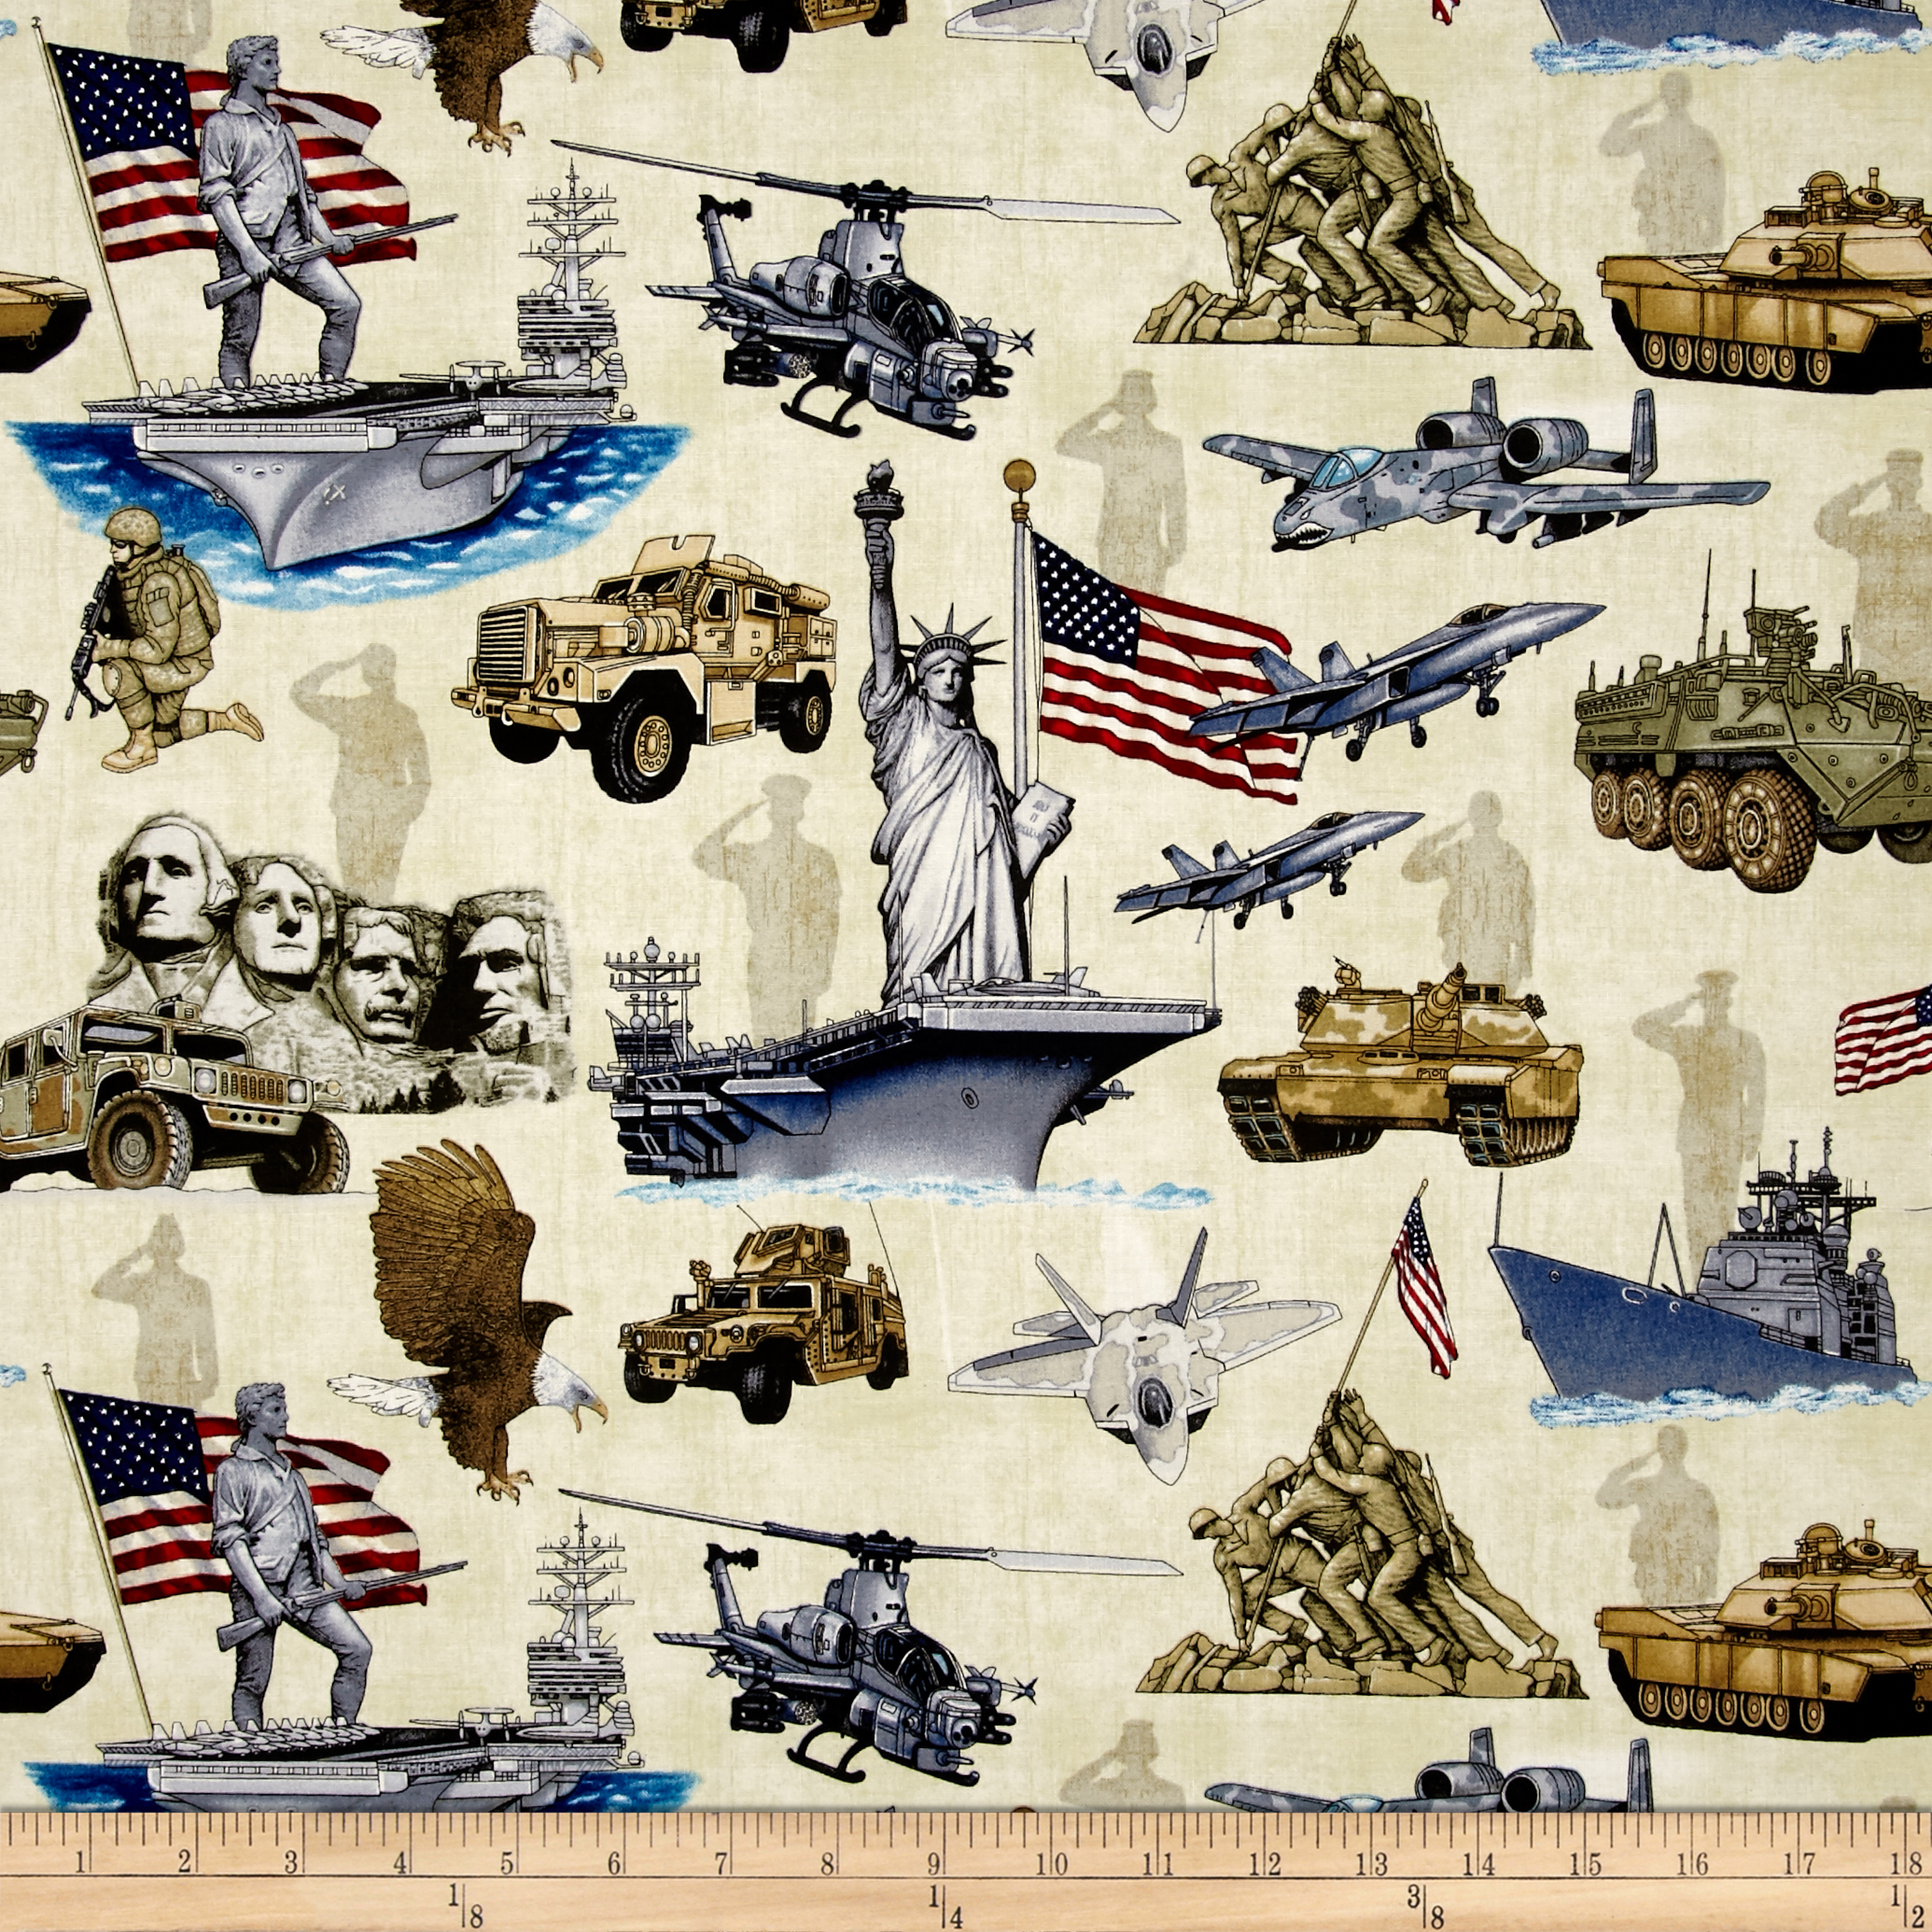 Home Of The Brave Patriotic Icons Oatmeal Fabric by Quilting Treasures in USA